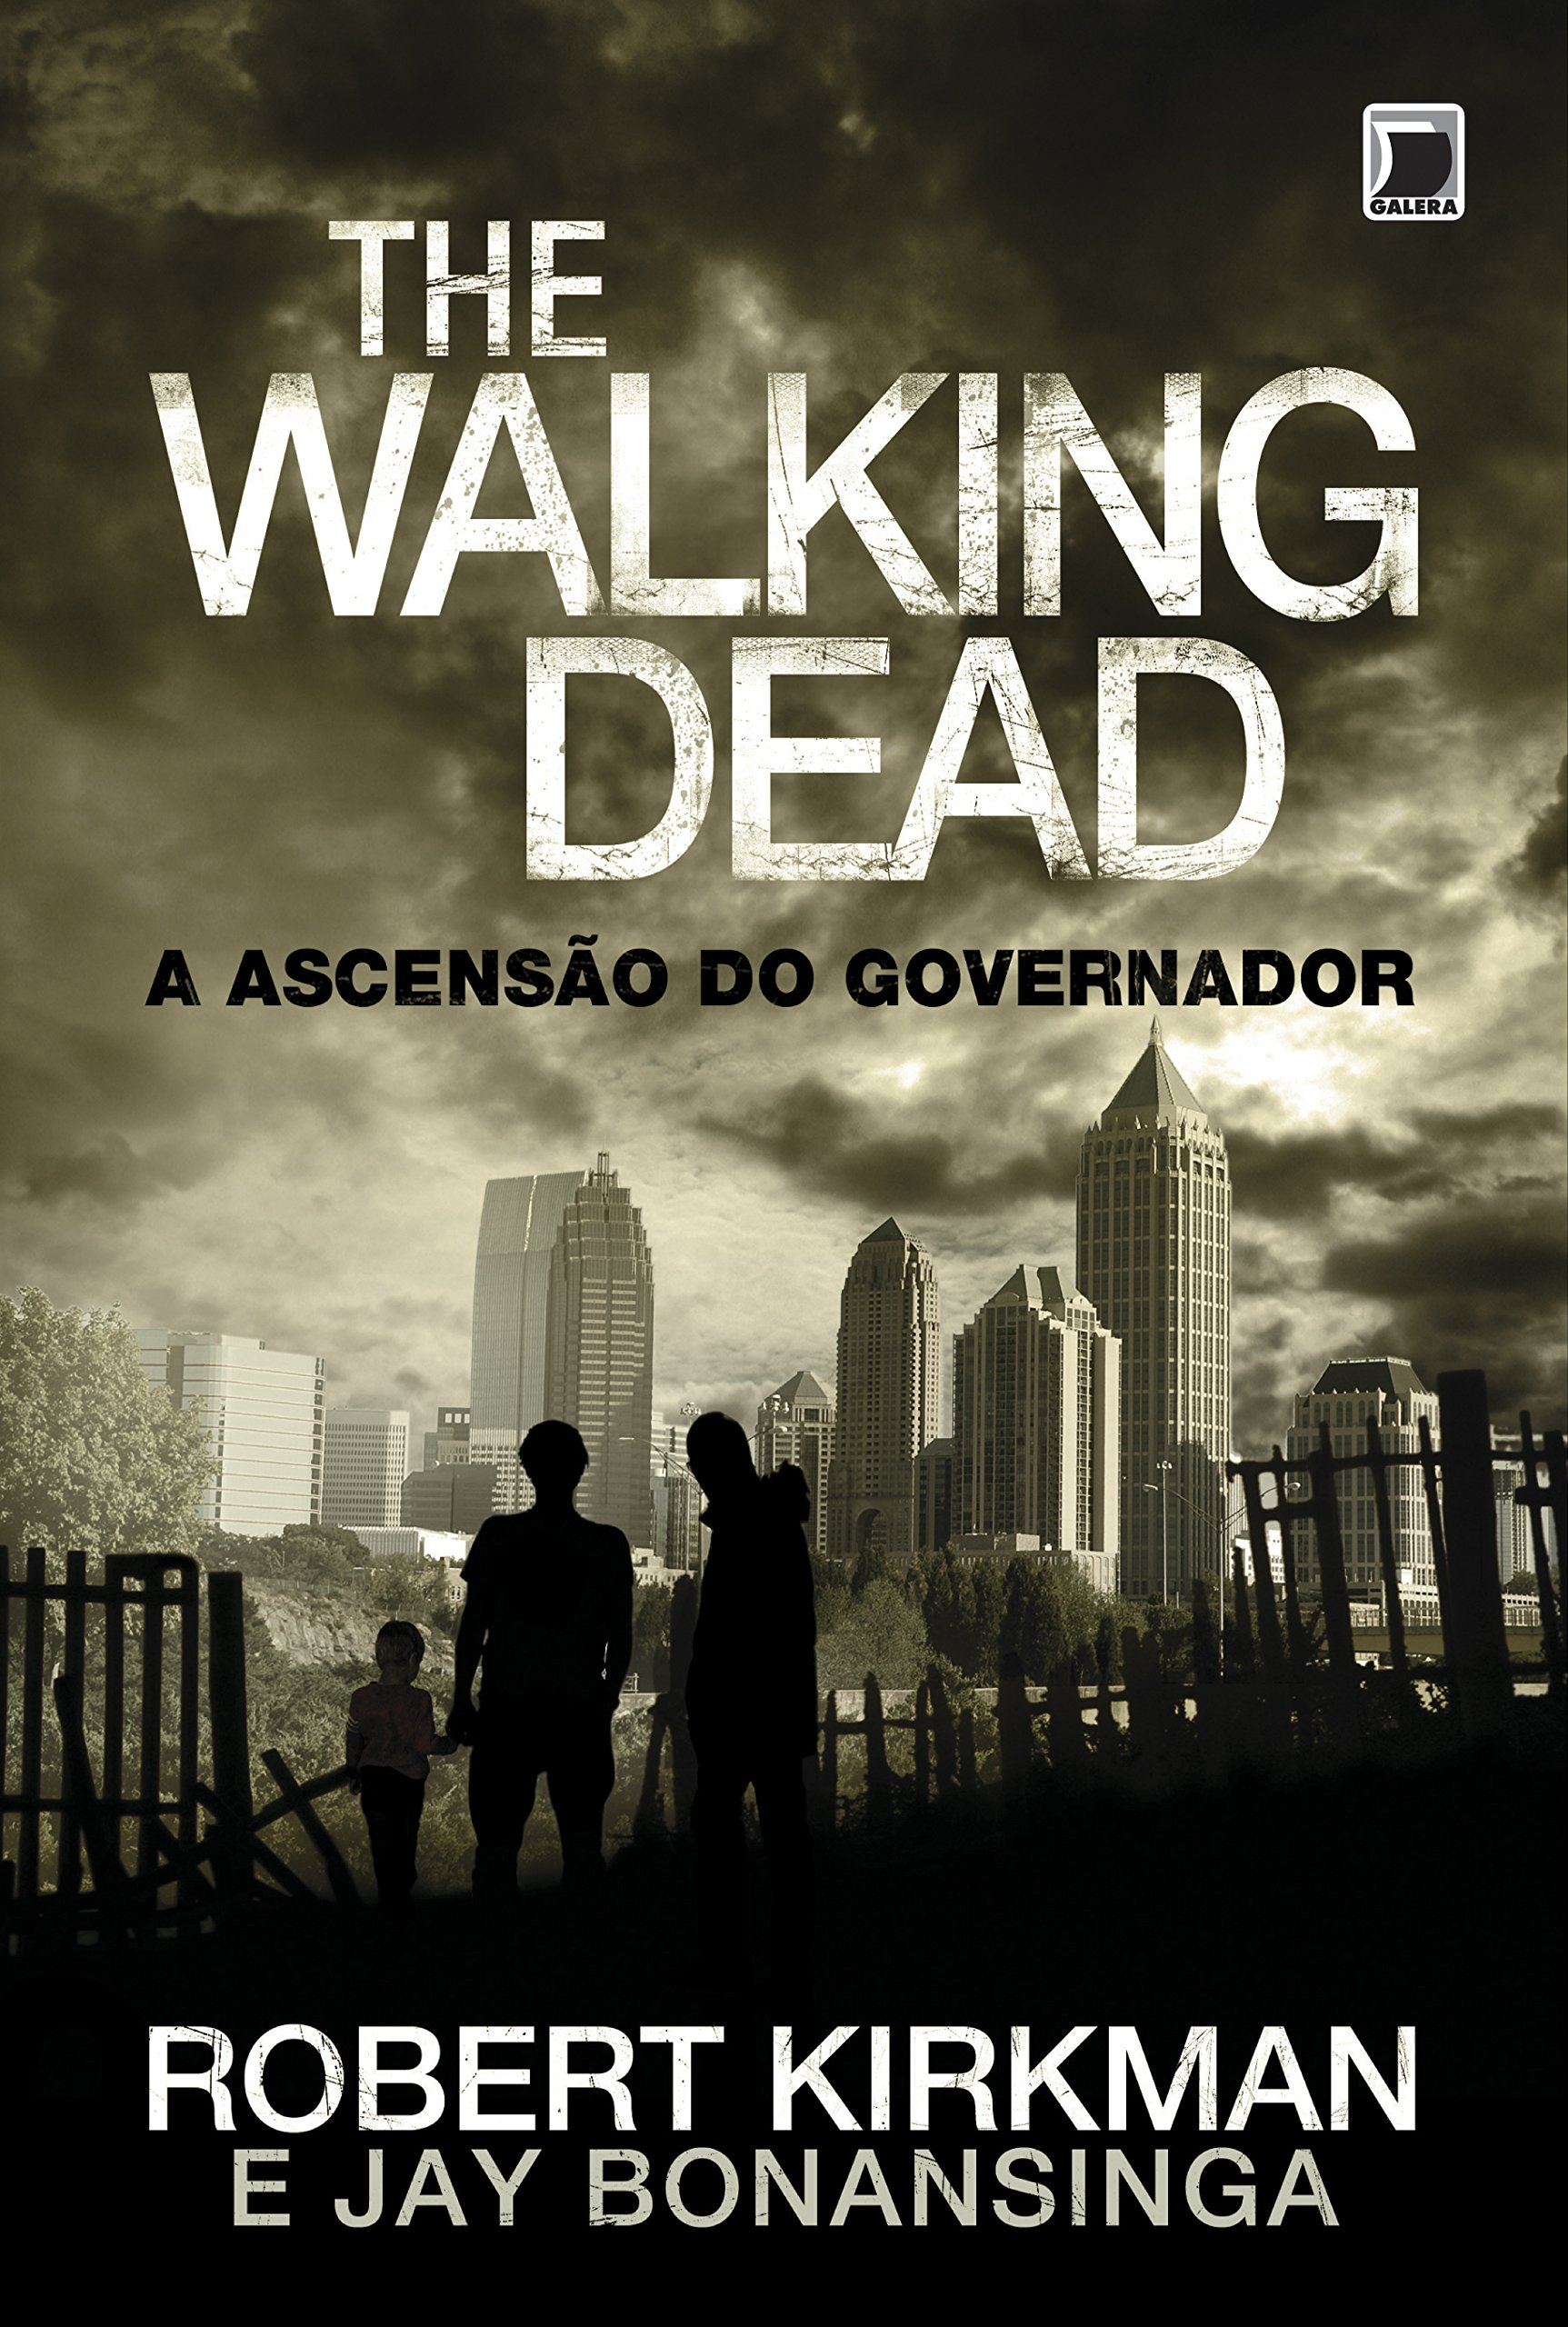 Resenha | The Walking Dead: A Ascensão do Governador – Robert Kirkman e Jay Bonansinga